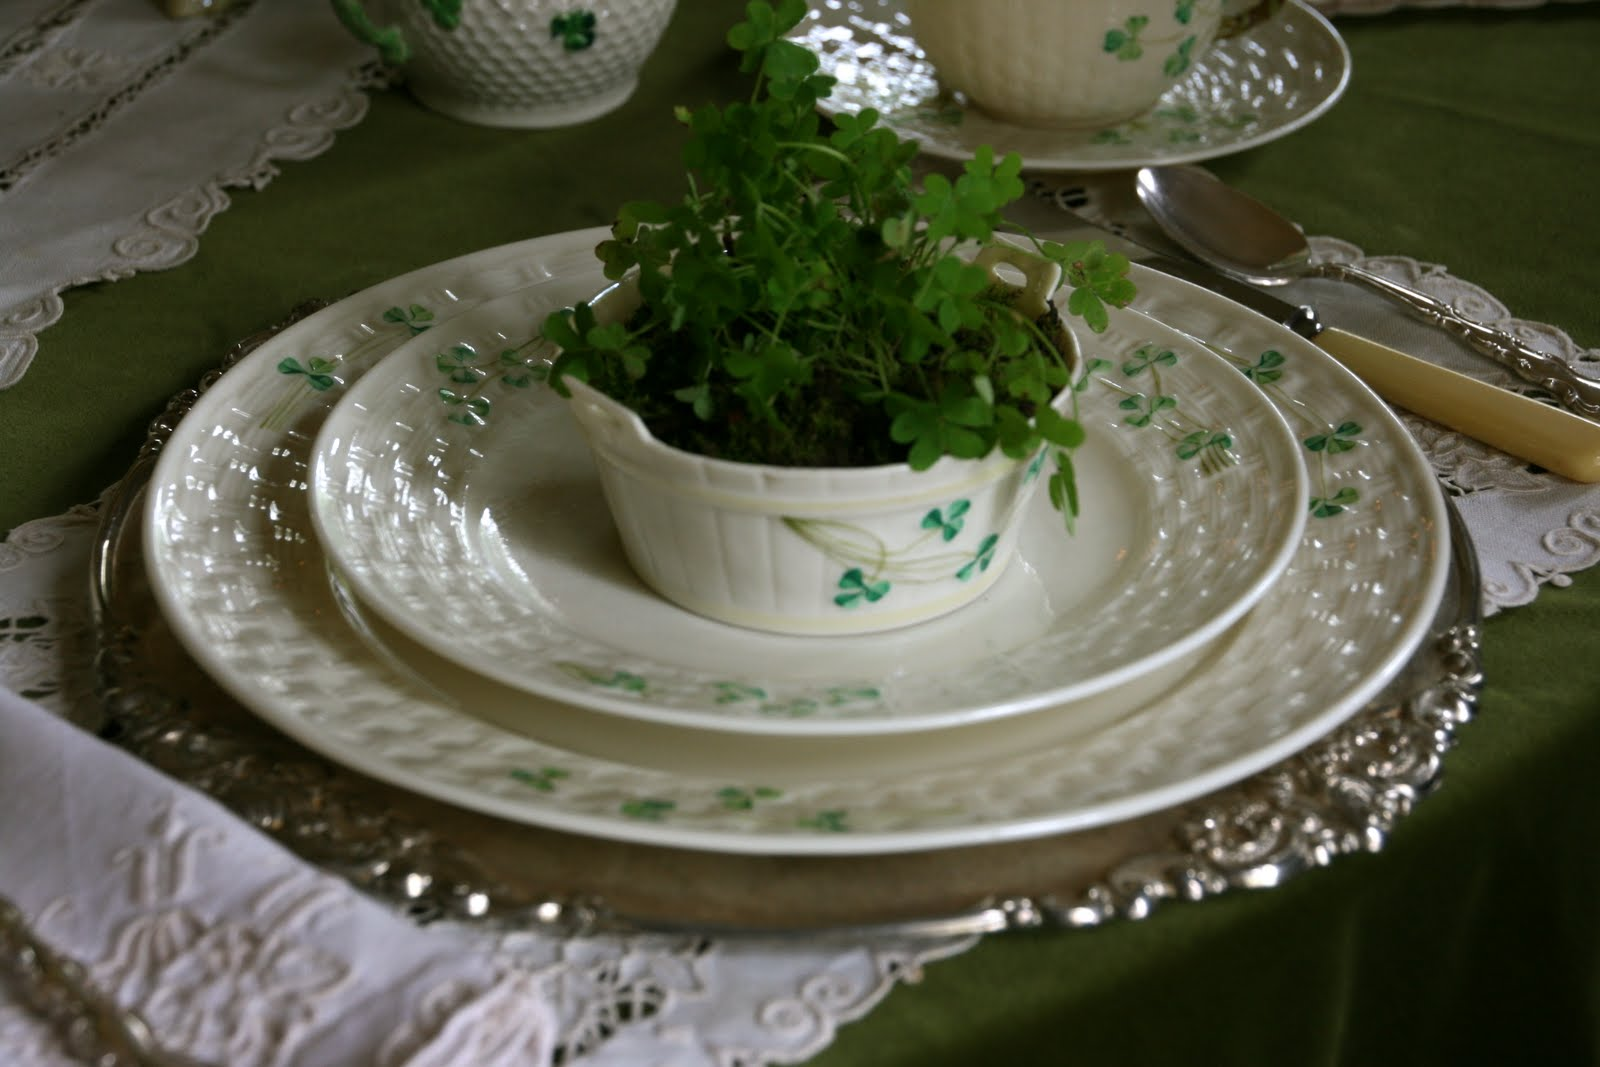 Irish Table Settings Vignette Design St Patricks Day Tablescape With Belleek